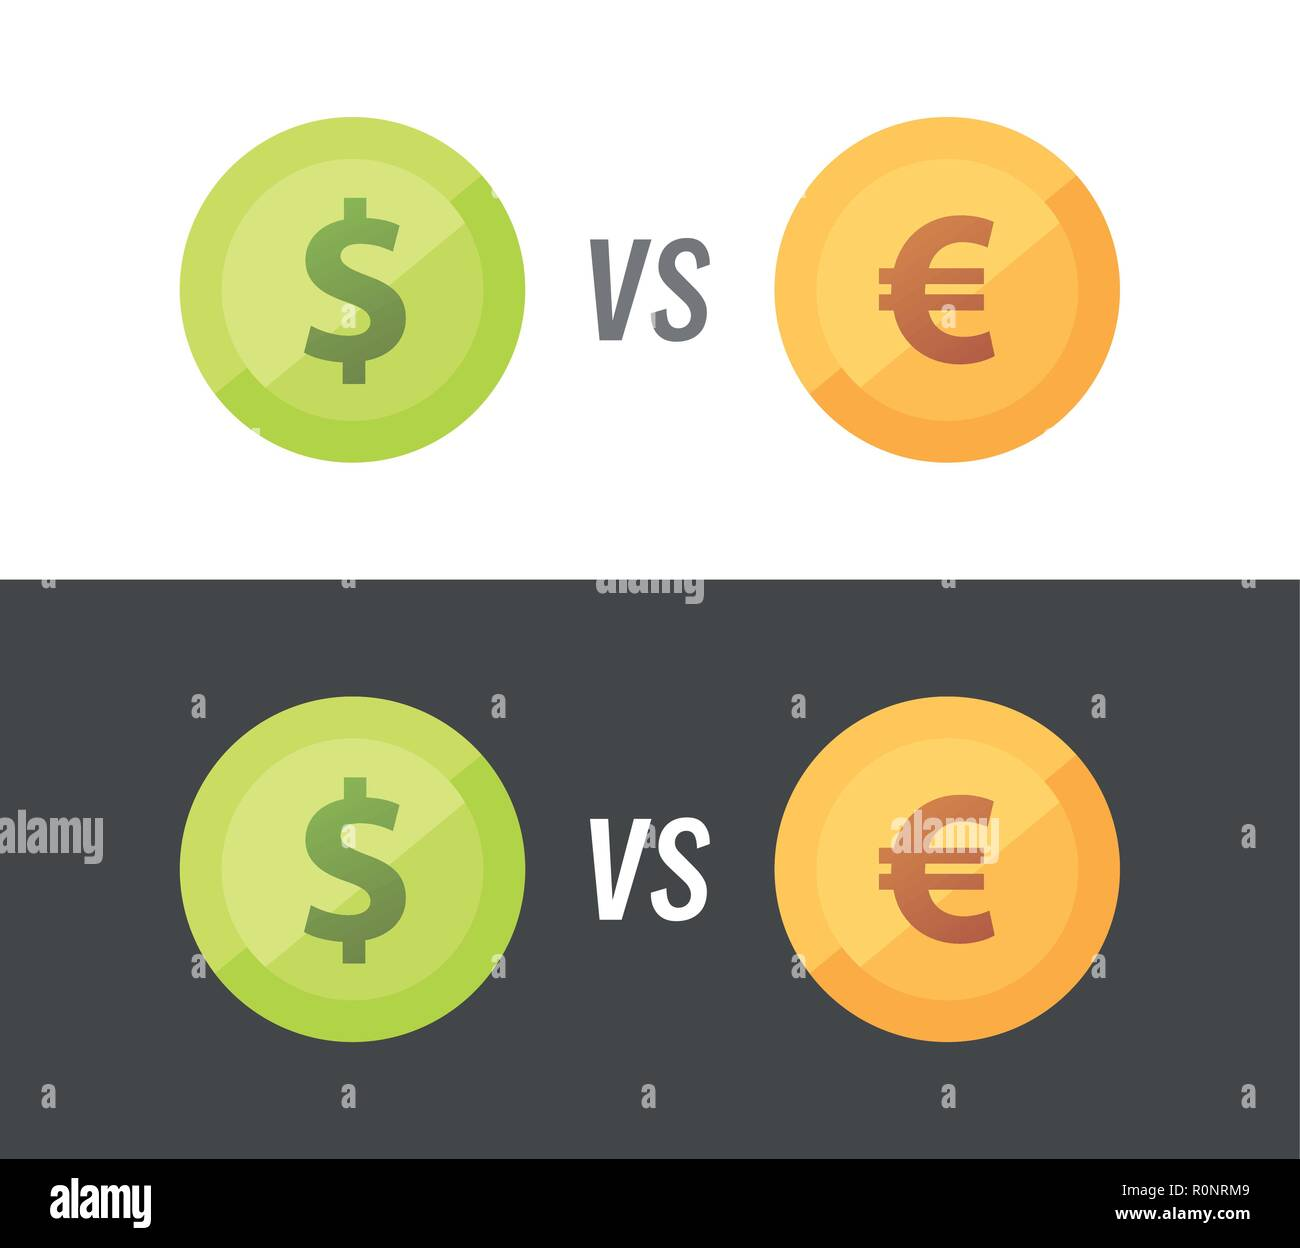 Currency pair of Euro vs Dollar - vector illustration on white and black background. - Stock Vector